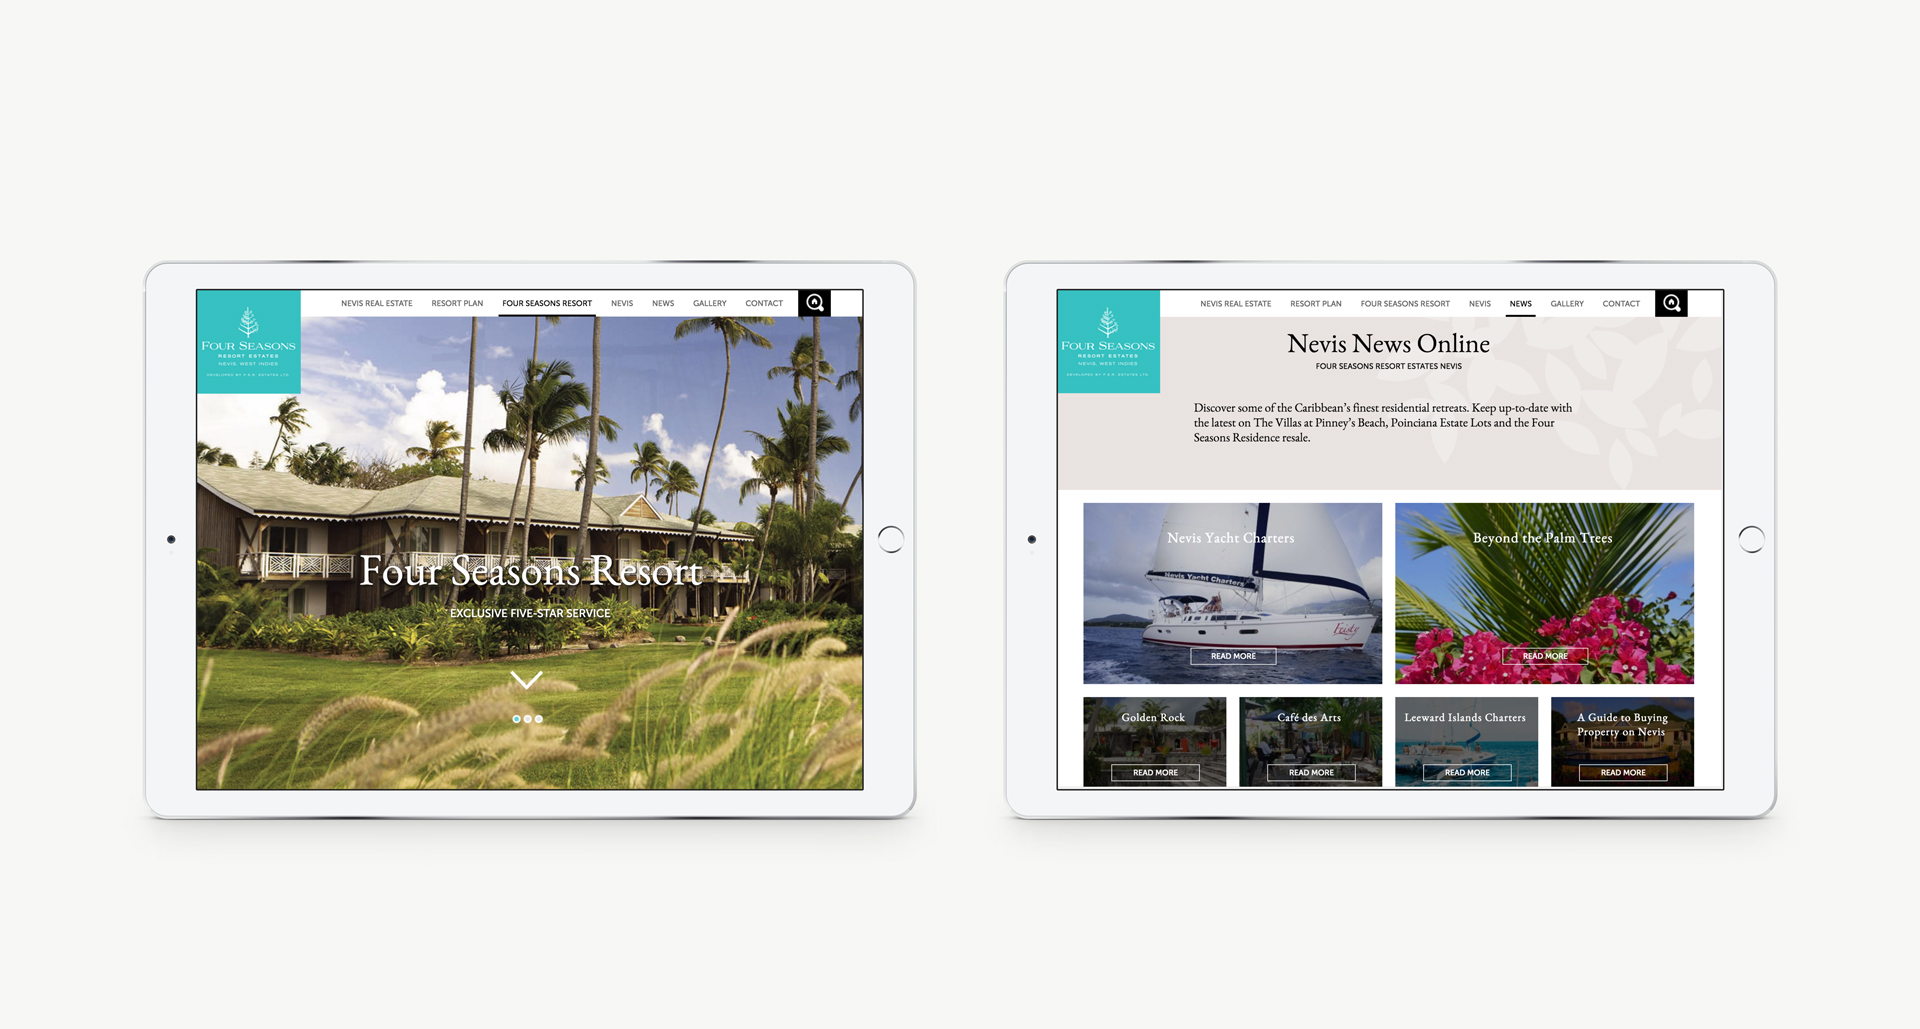 Luxury Property Marketing | Four Seasons Resort Estates | iPad Responsive Website Shown on iPad